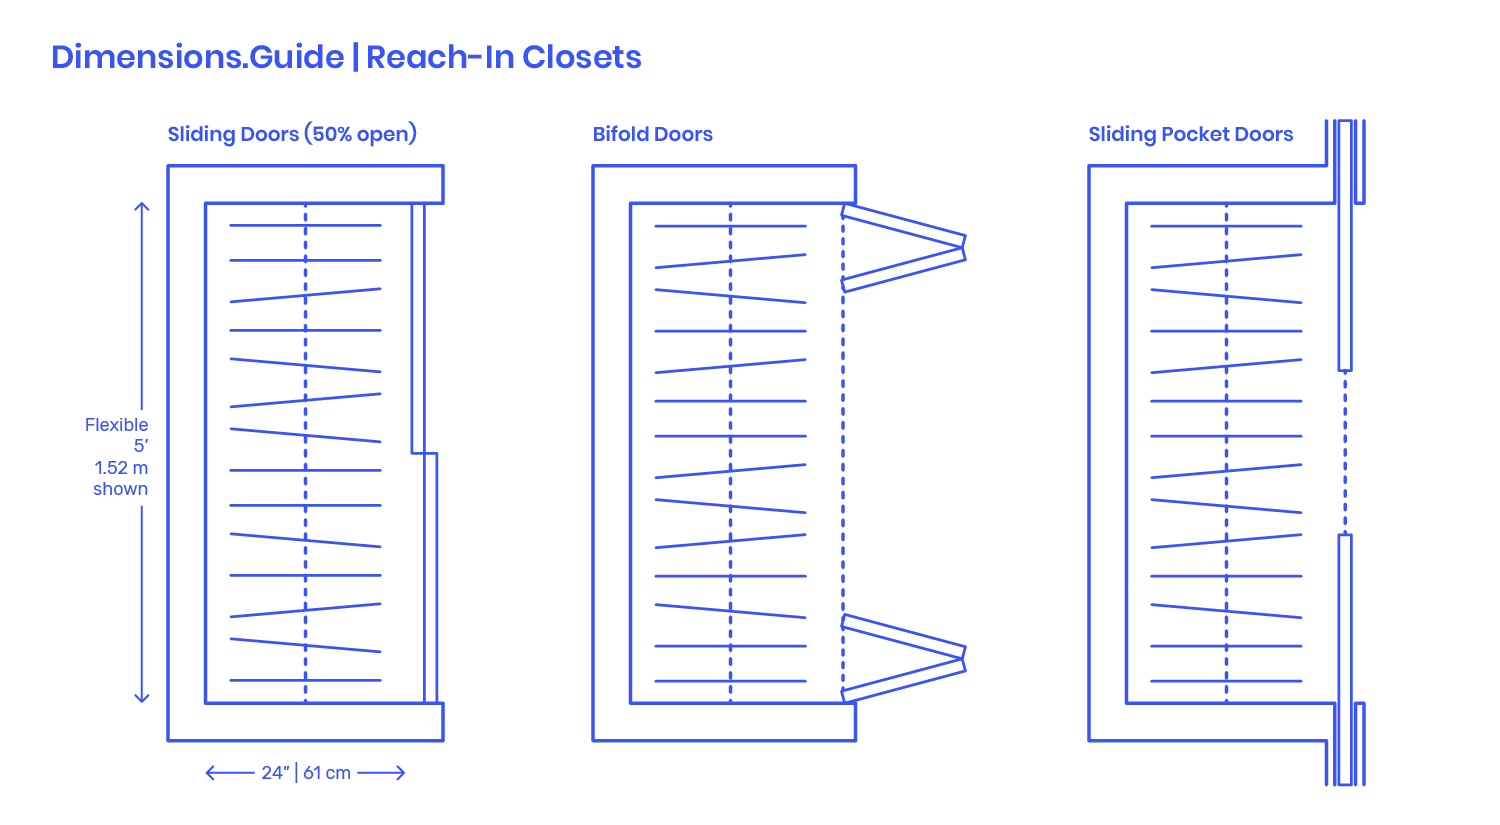 Reach In Closets Dimensions Drawings Dimensions Guide